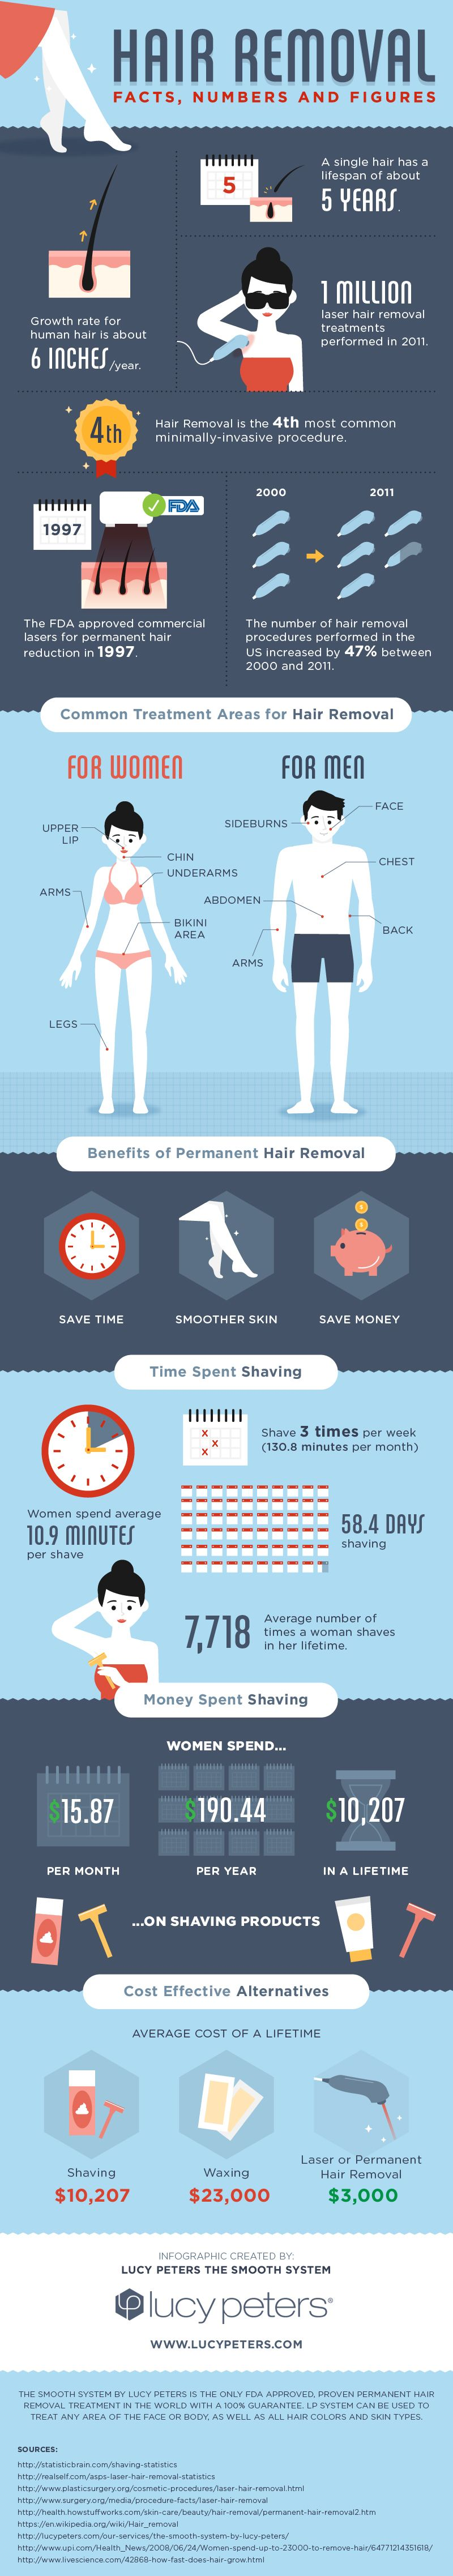 Hair Removal Facts, Numbers and Figures #infographic